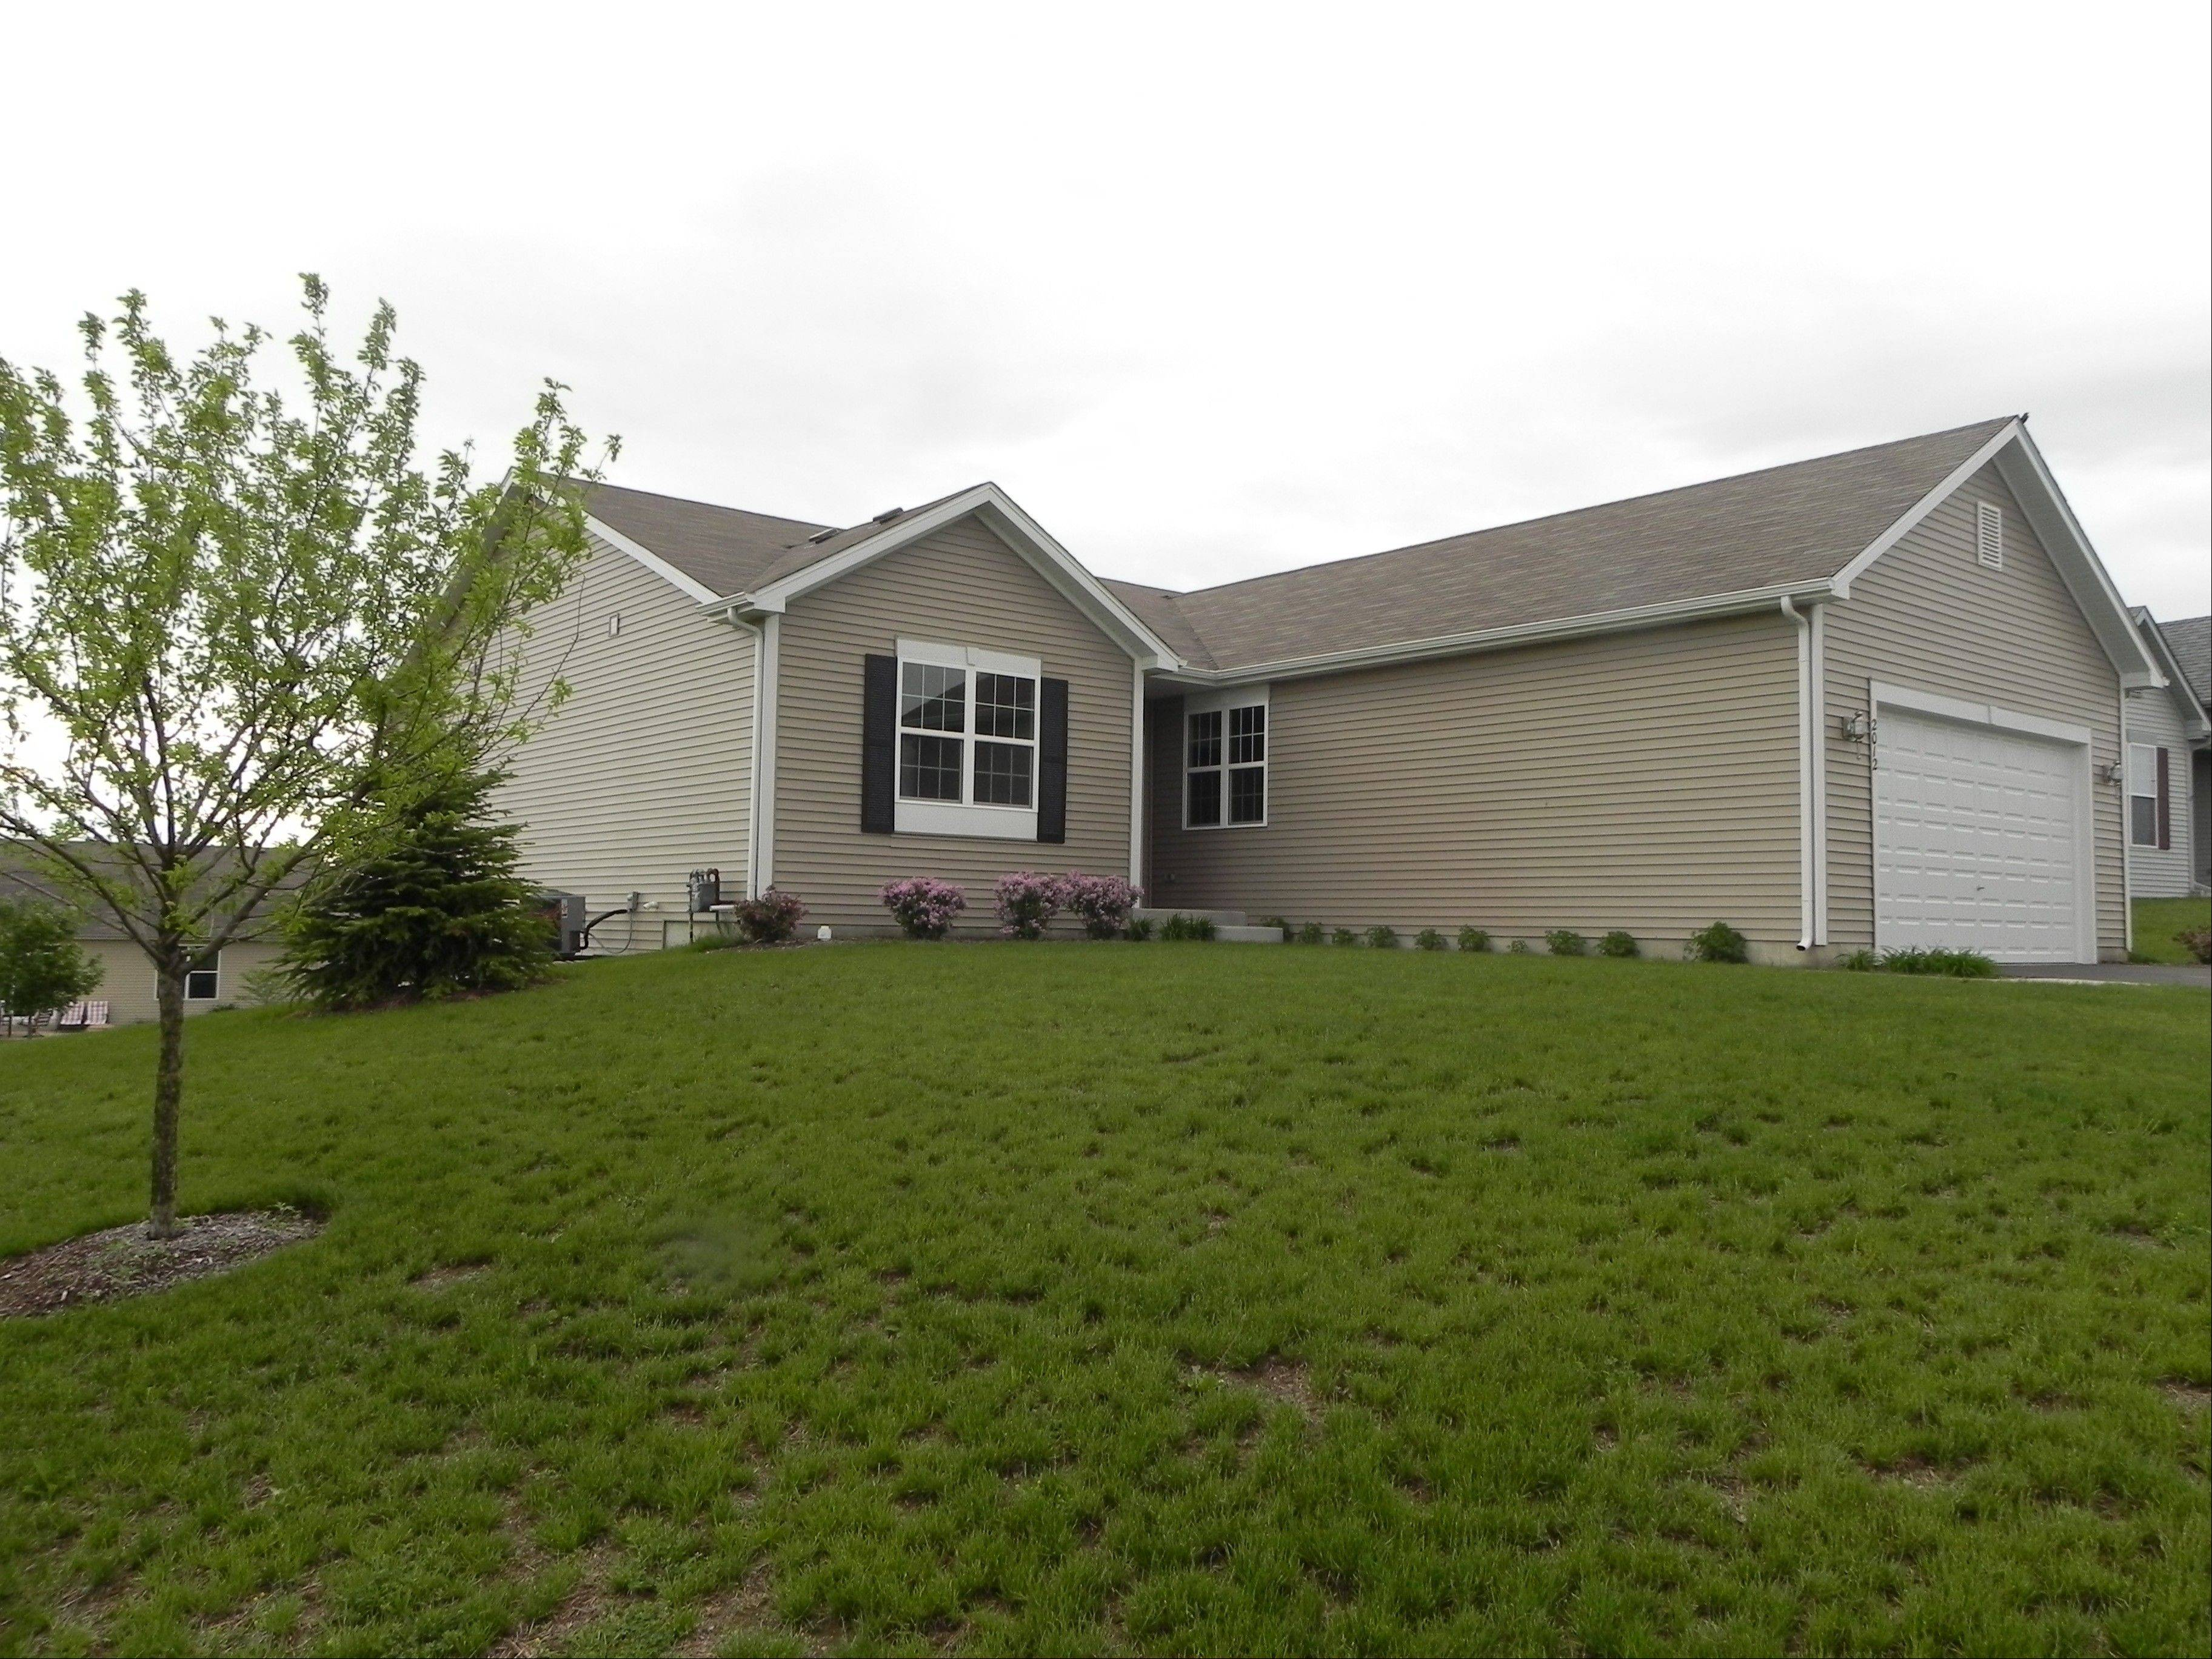 Gerstad Builders has a ranch home like this one in McHenry ready for a quick move.